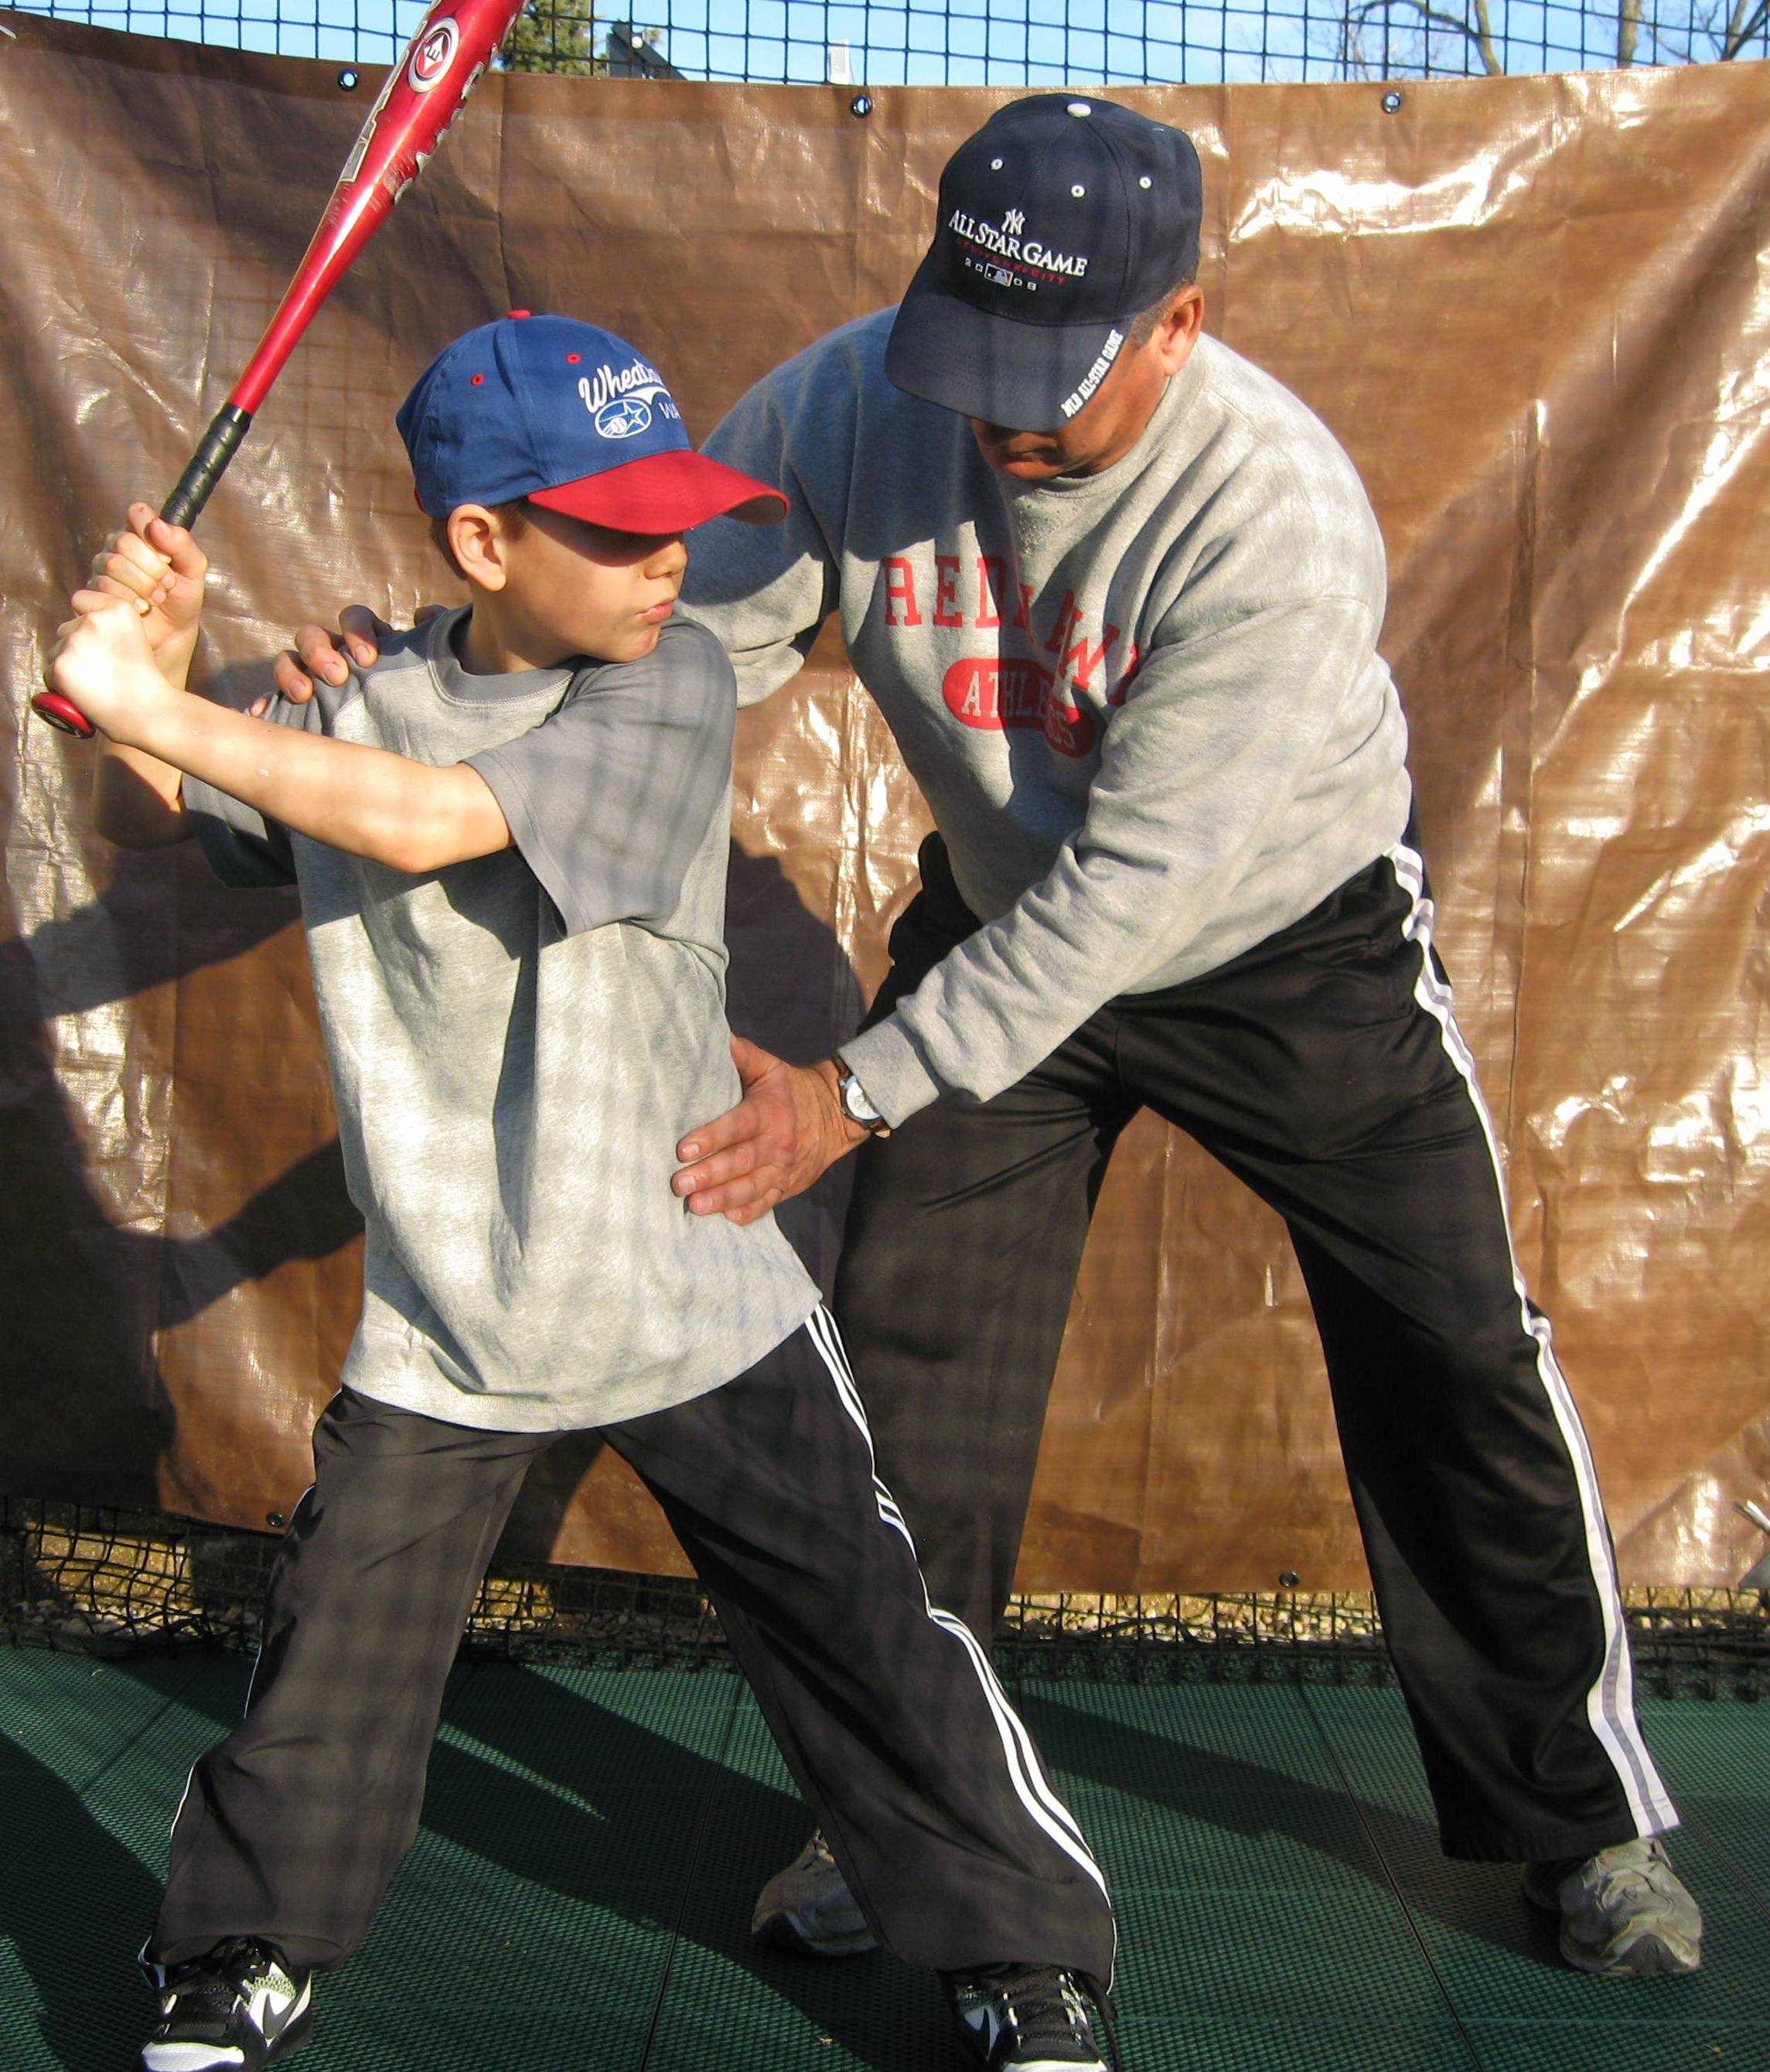 Youth Baseball Instruction Tips To Stay Hitting